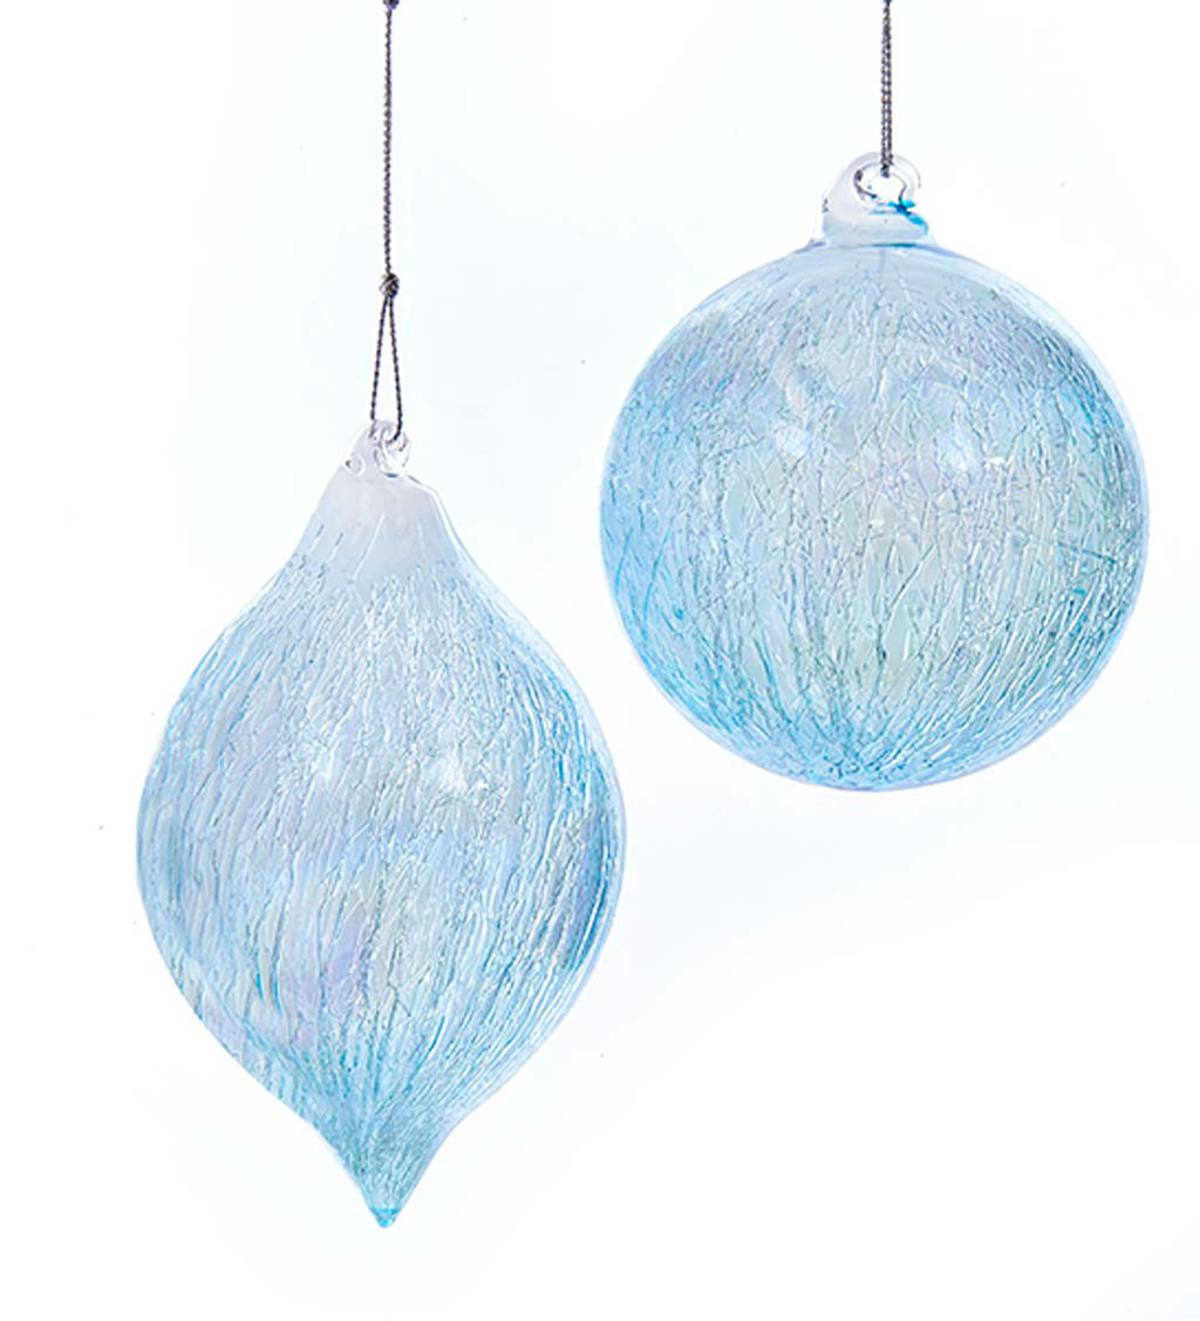 Ball and Finial Glass Ornaments, Set of 2